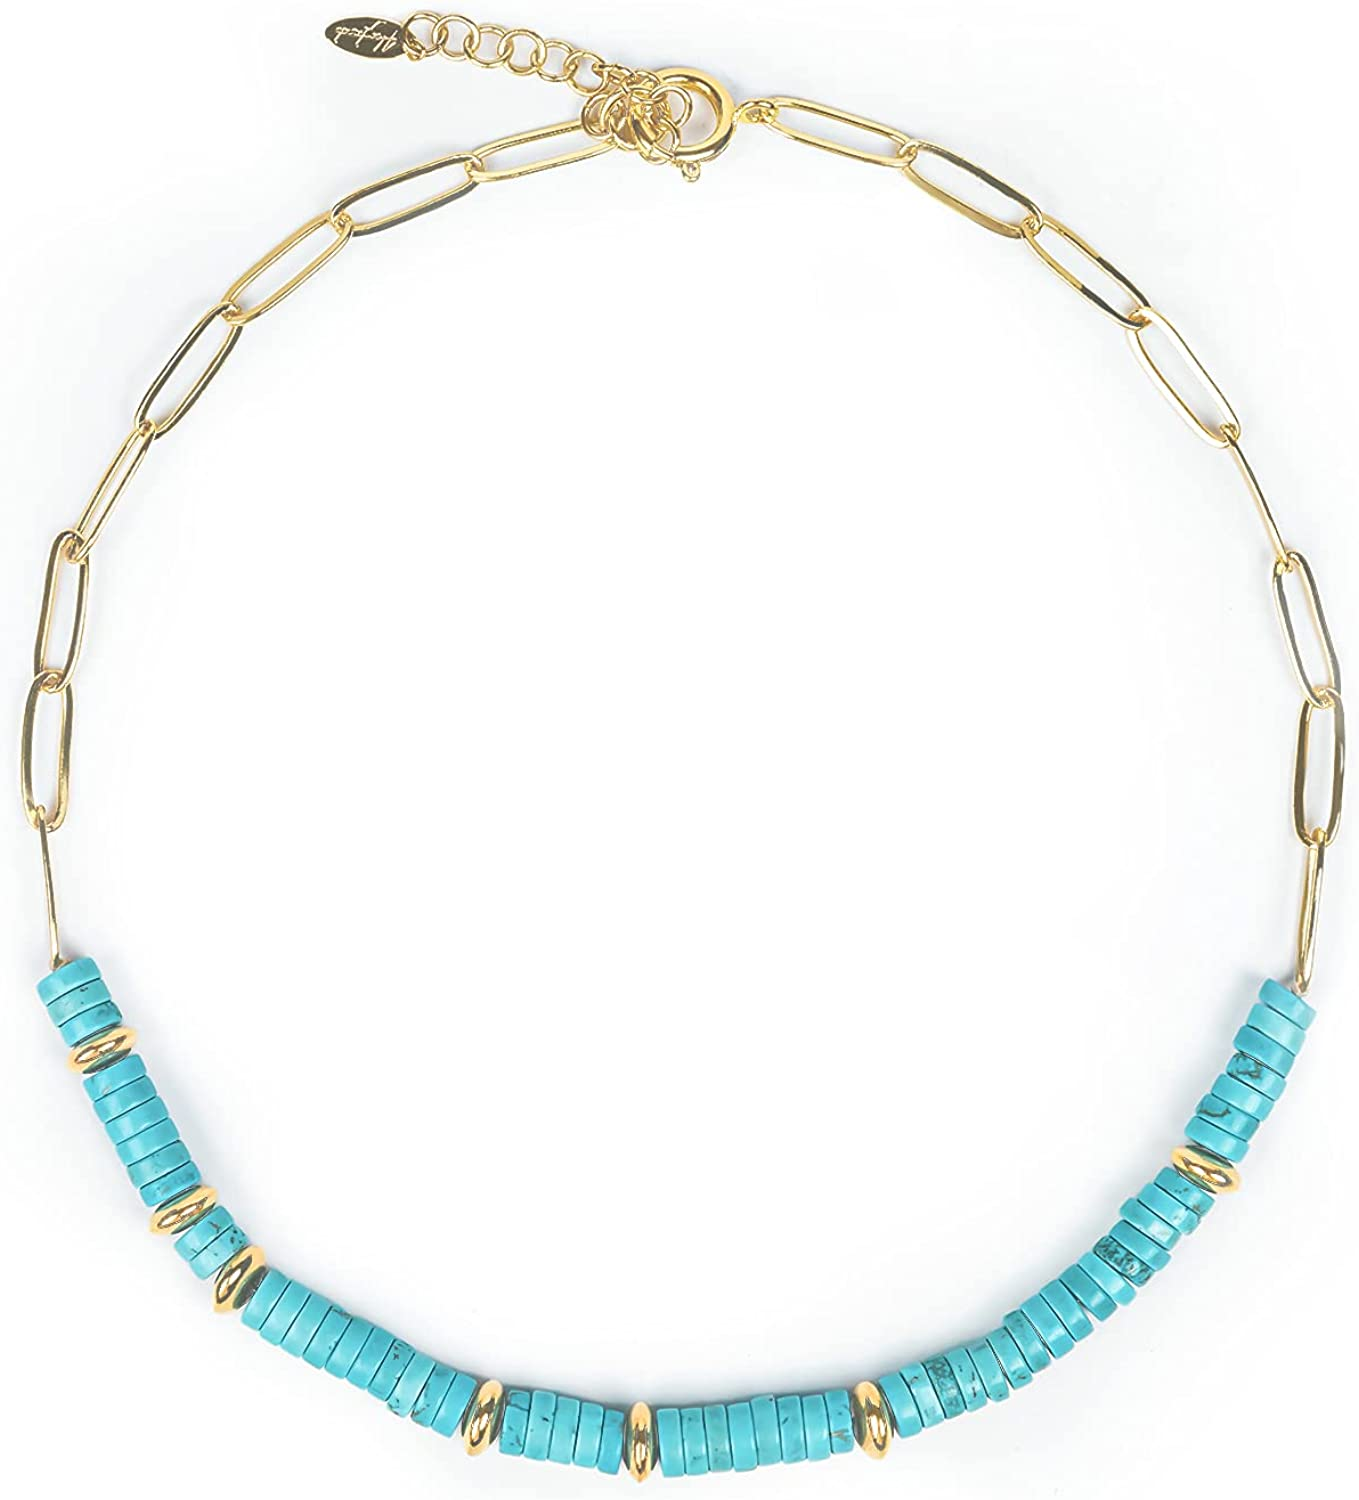 Emptizer Turquoise Stone Financial sales sale Necklace Choker SALENEW very popular! Gold Plated